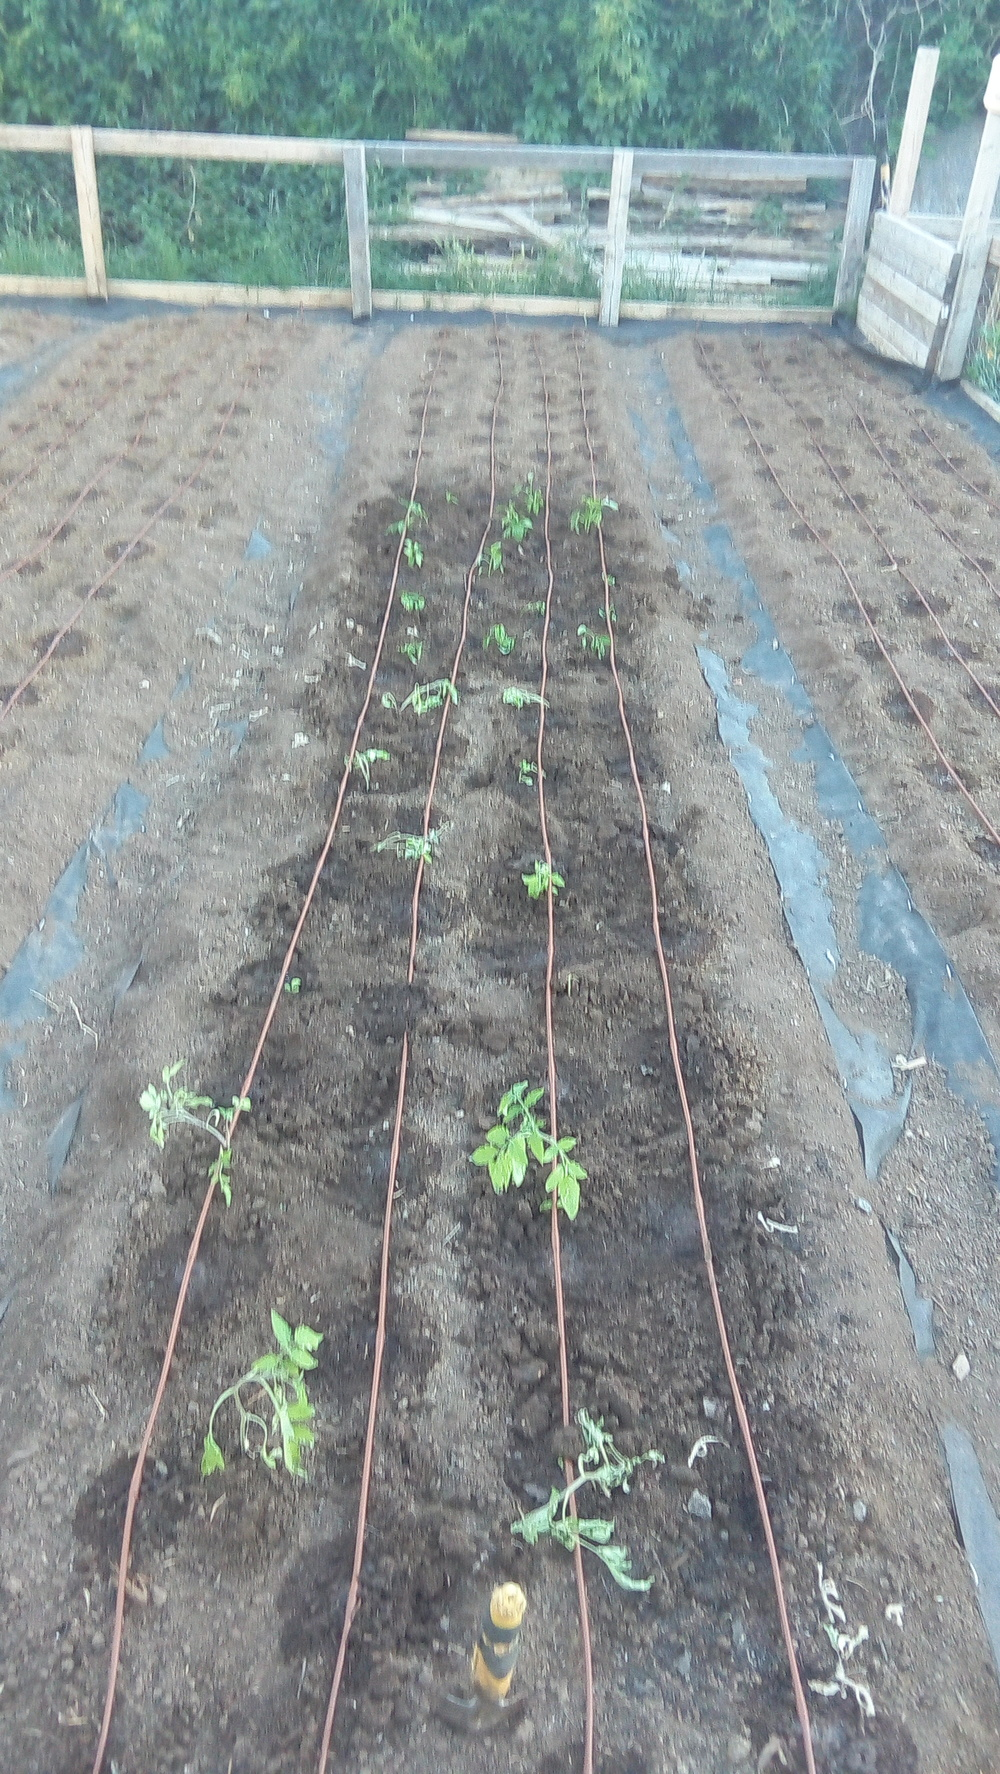 Transplanted bell peppers and tomatoes